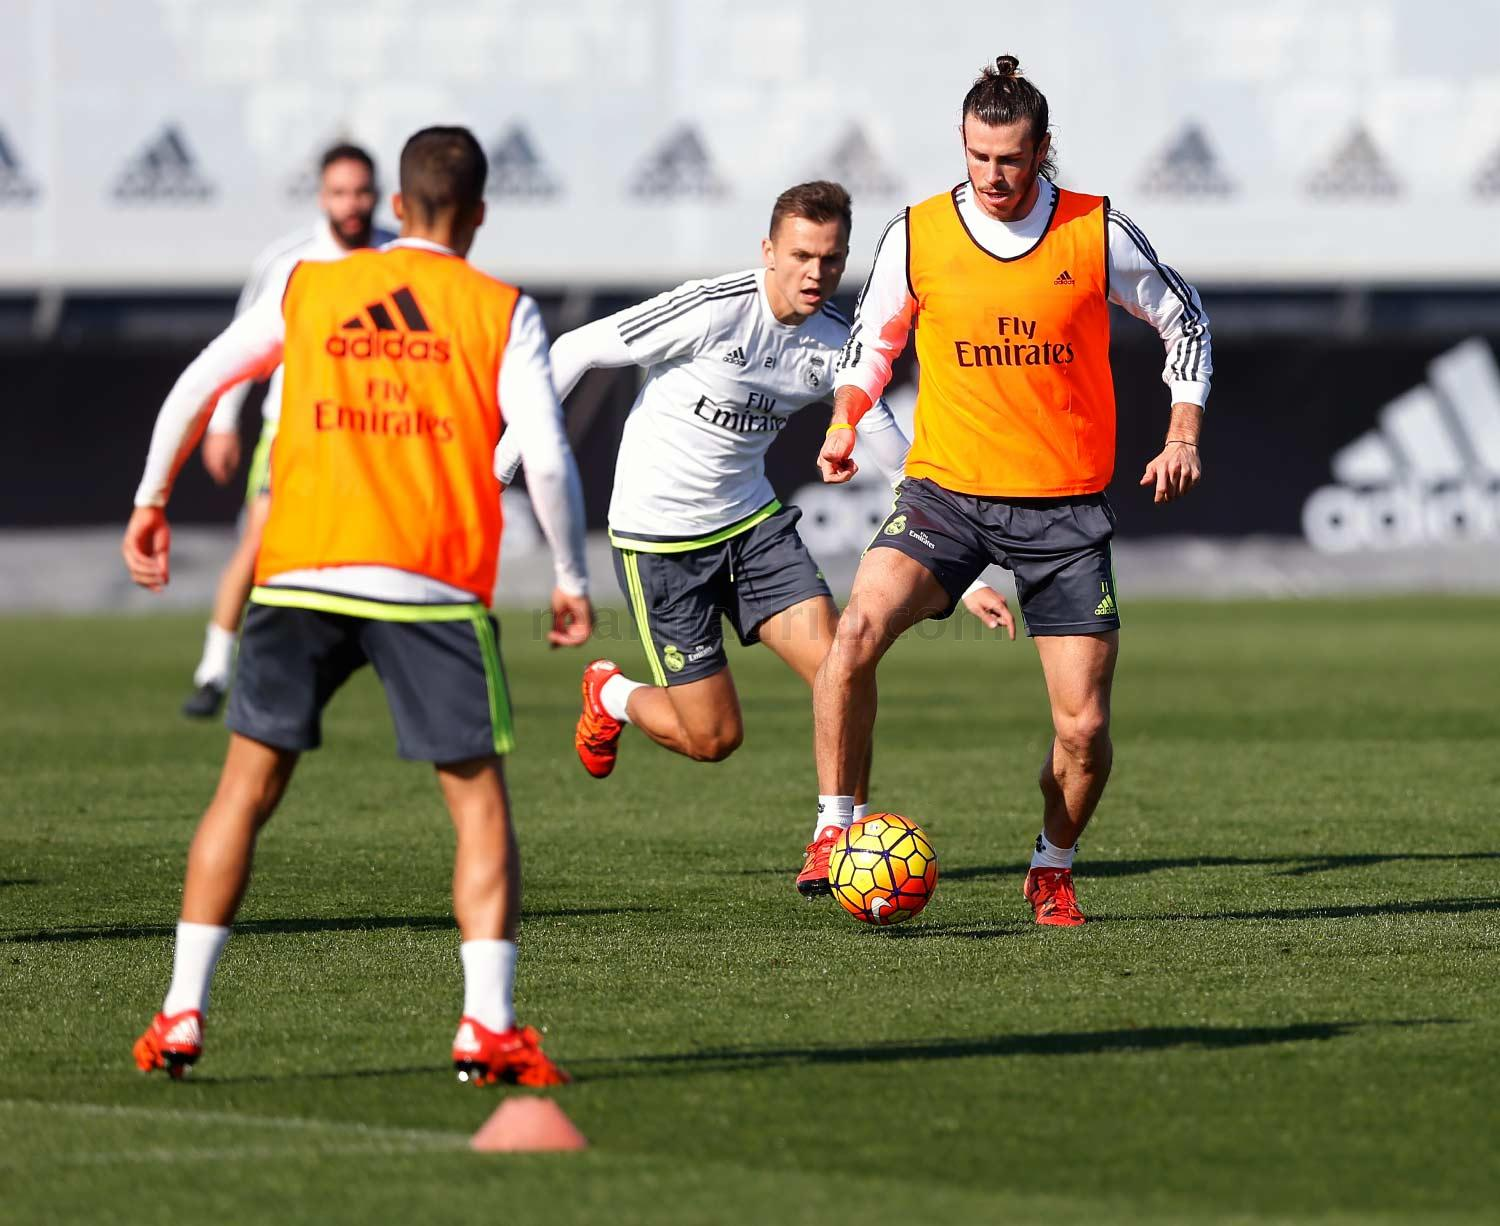 Real Madrid - Entrenamiento del Real Madrid - 06-11-2015